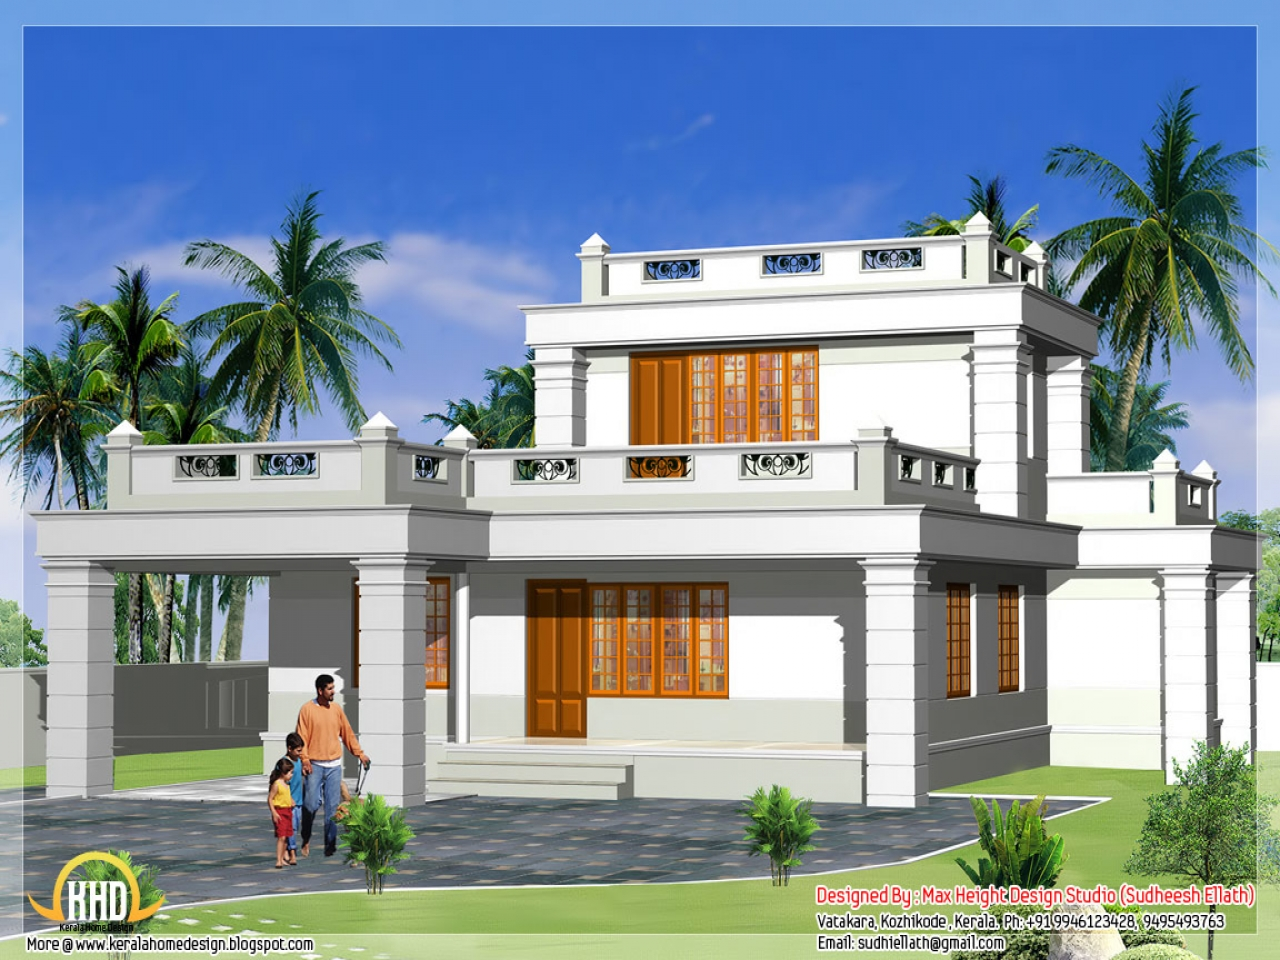 Cottage front elevation house designs small house for Small frontage house designs